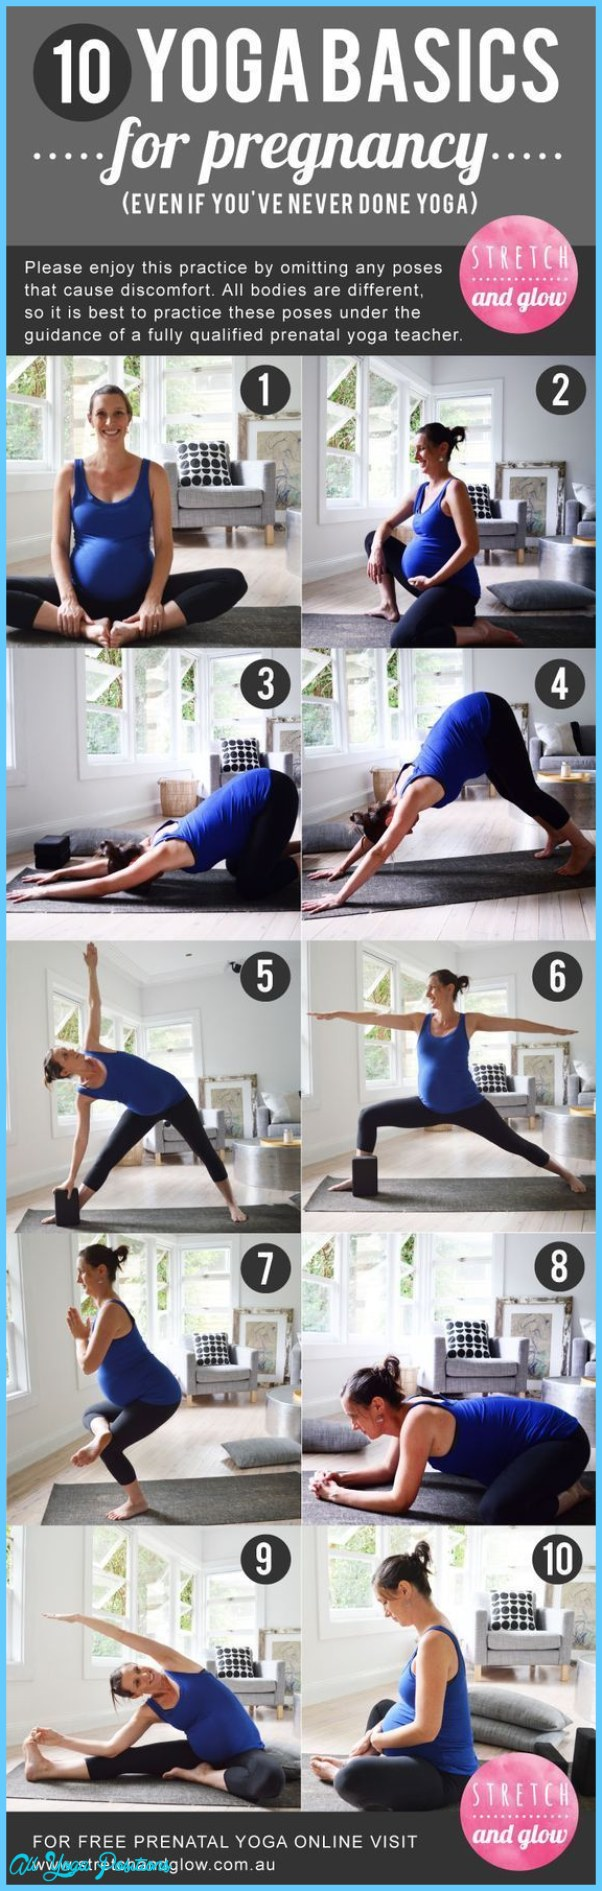 Pregnancy Yoga Poses To Avoid_11.jpg